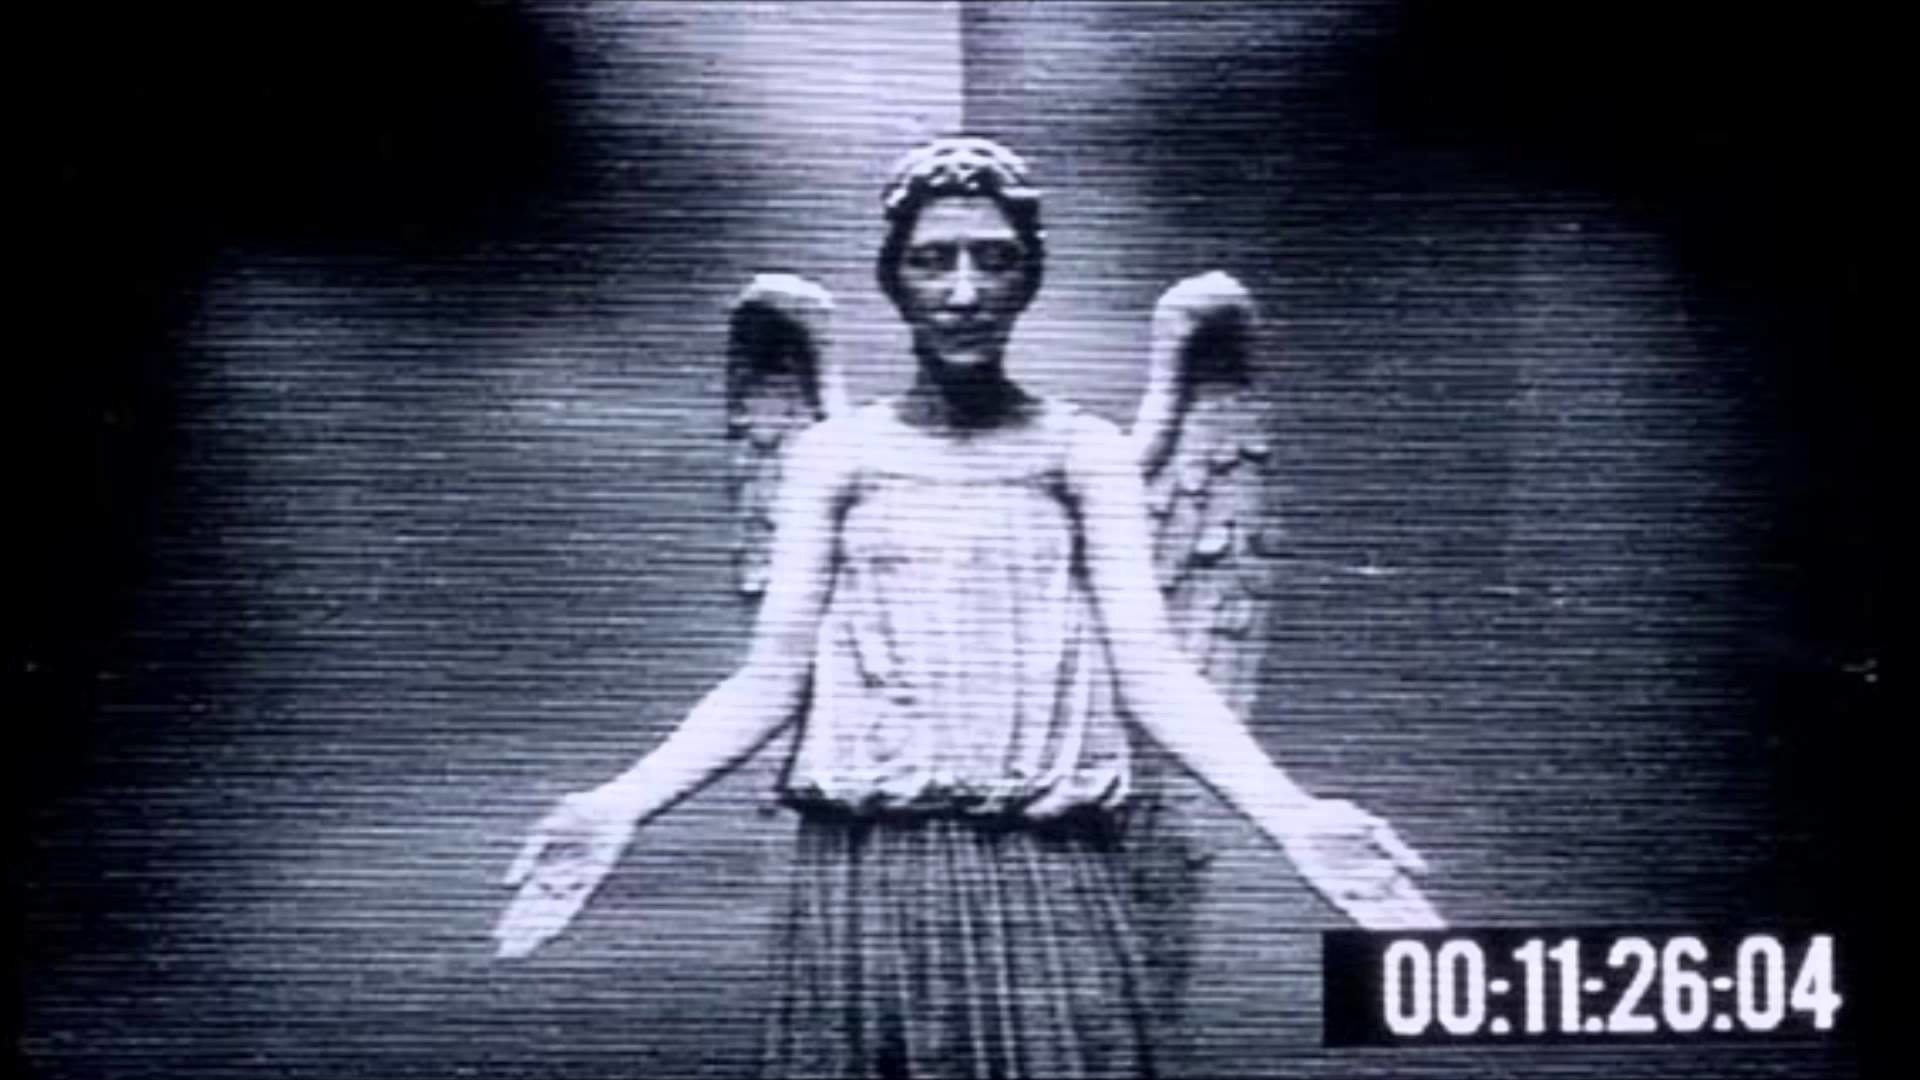 Weeping Angels Live Wallpaper 65 images 1920x1080